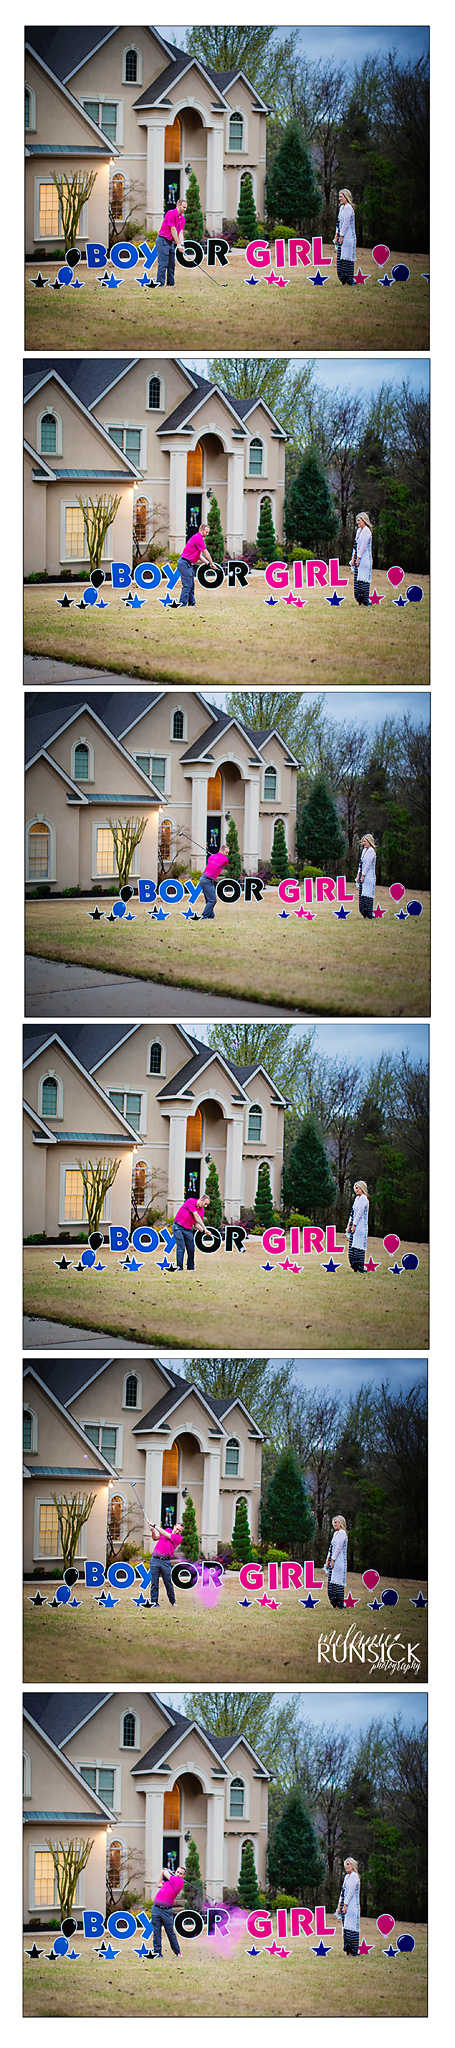 melanie runsick photography jonesboro arkansas photography gender reveal.jpg